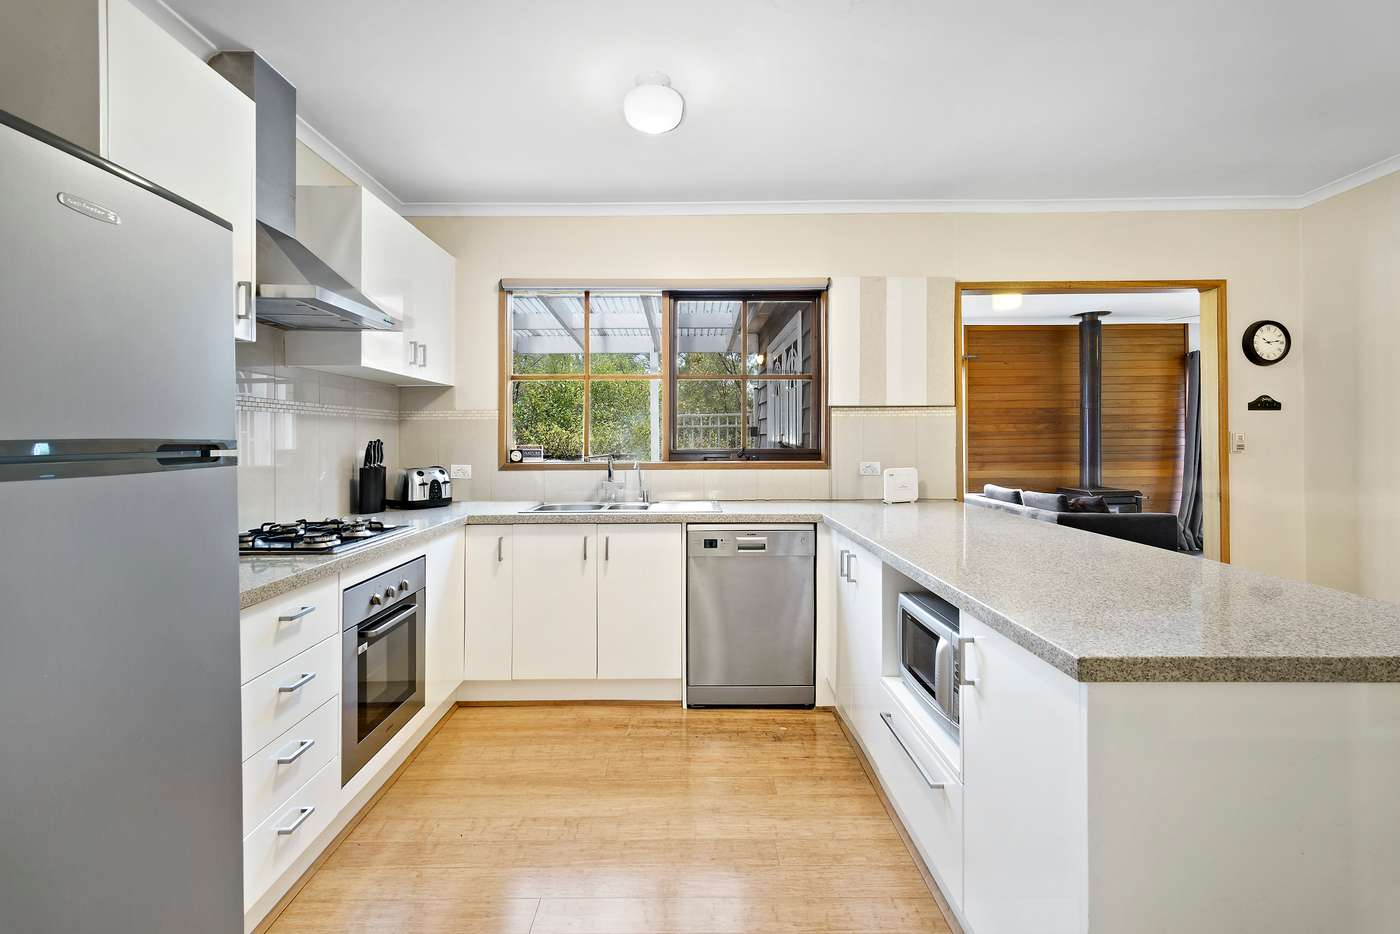 Fifth view of Homely house listing, 24 Leggatt Street, Daylesford VIC 3460